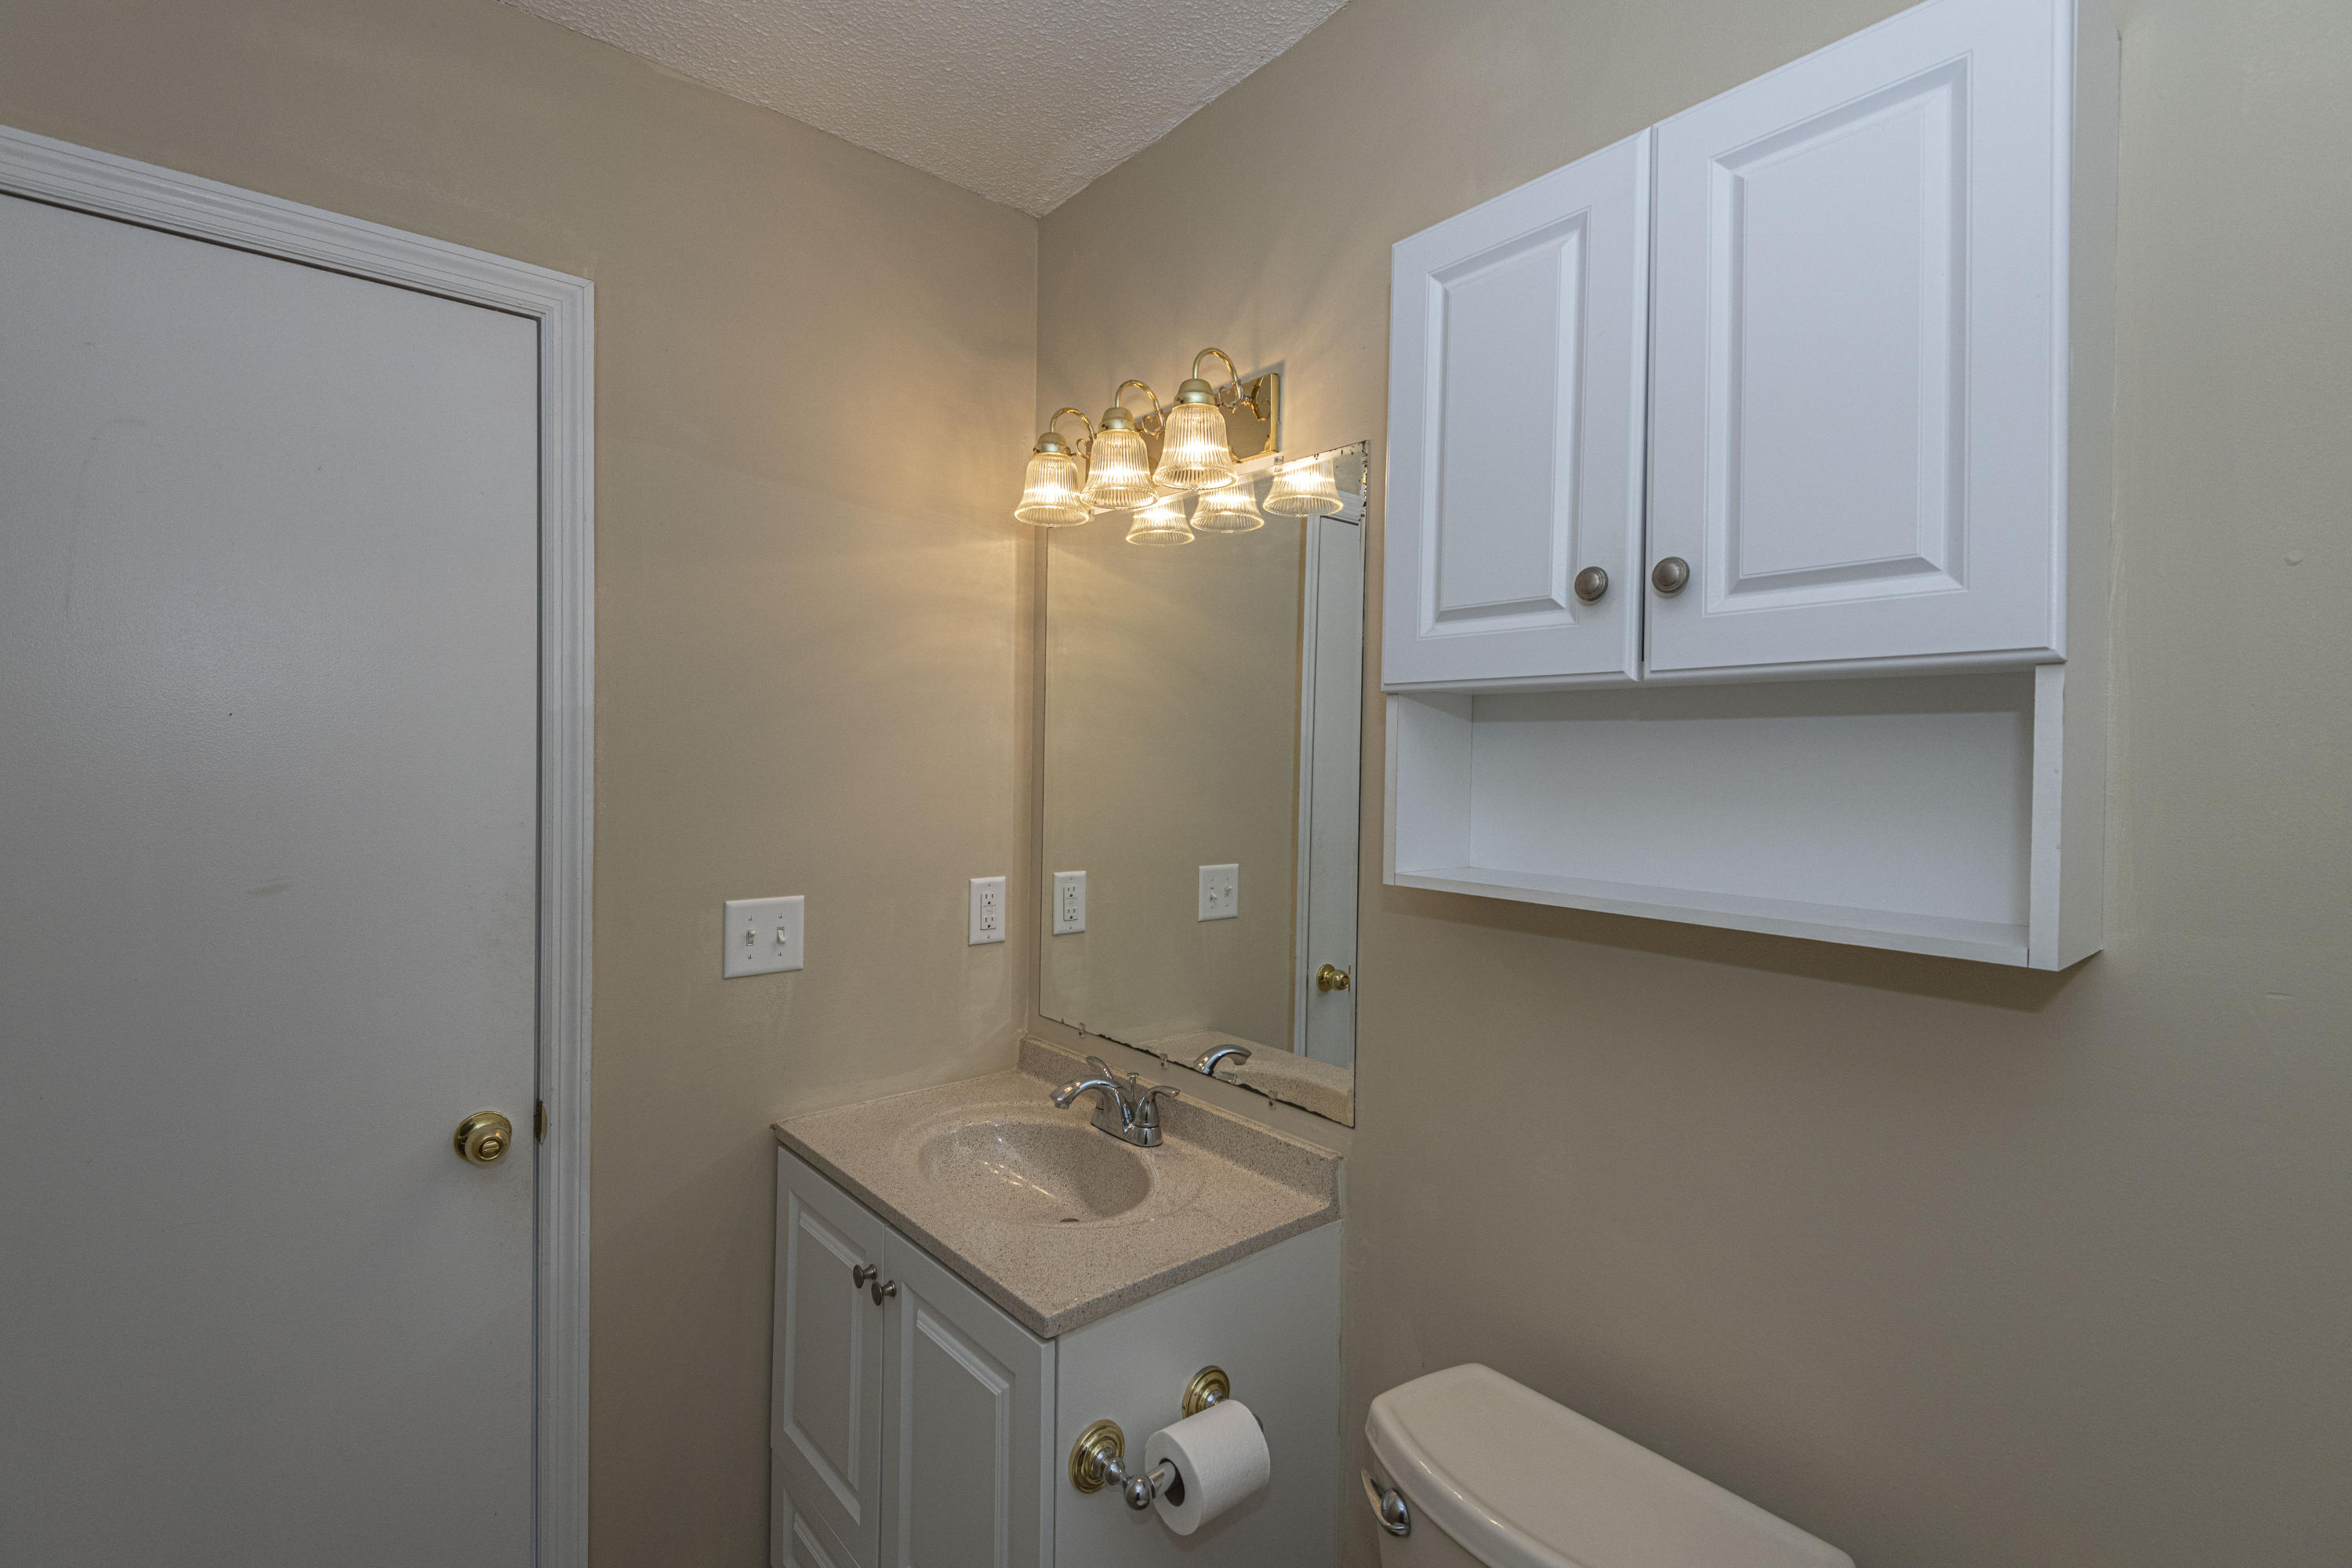 Foxborough Town Houses Homes For Sale - 120 Brush, Goose Creek, SC - 14